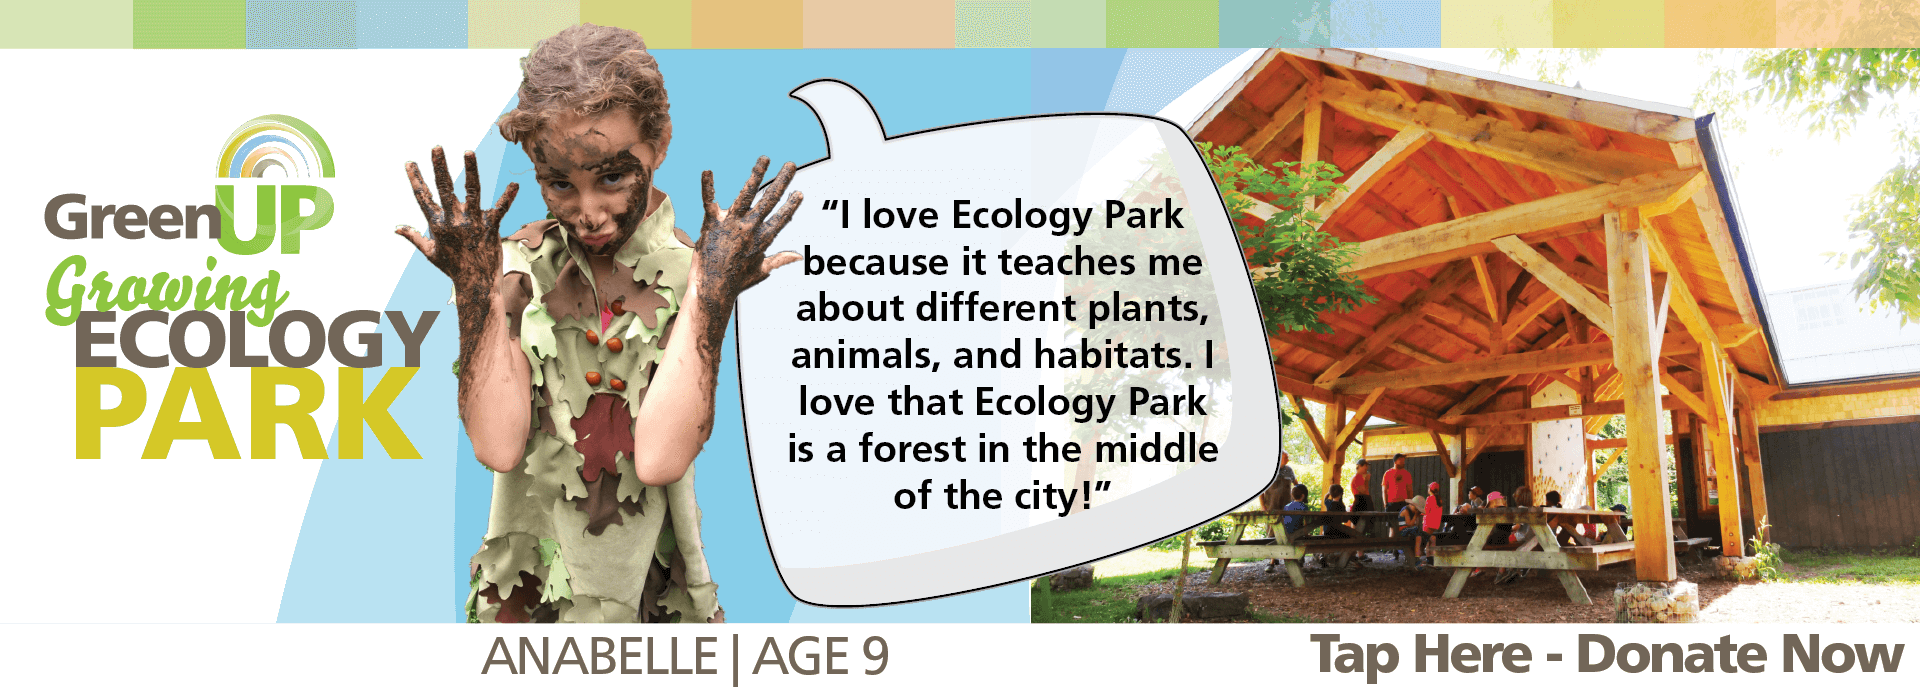 "Child named Anabelle with speech bubble saying ""I love Ecology Park because it teaches me about different plants, animals, and habitats. I love that Ecology Park is a forest in the middle of the city!"" Invitation to ""Donate Now"" in support of growing Ecology Park."